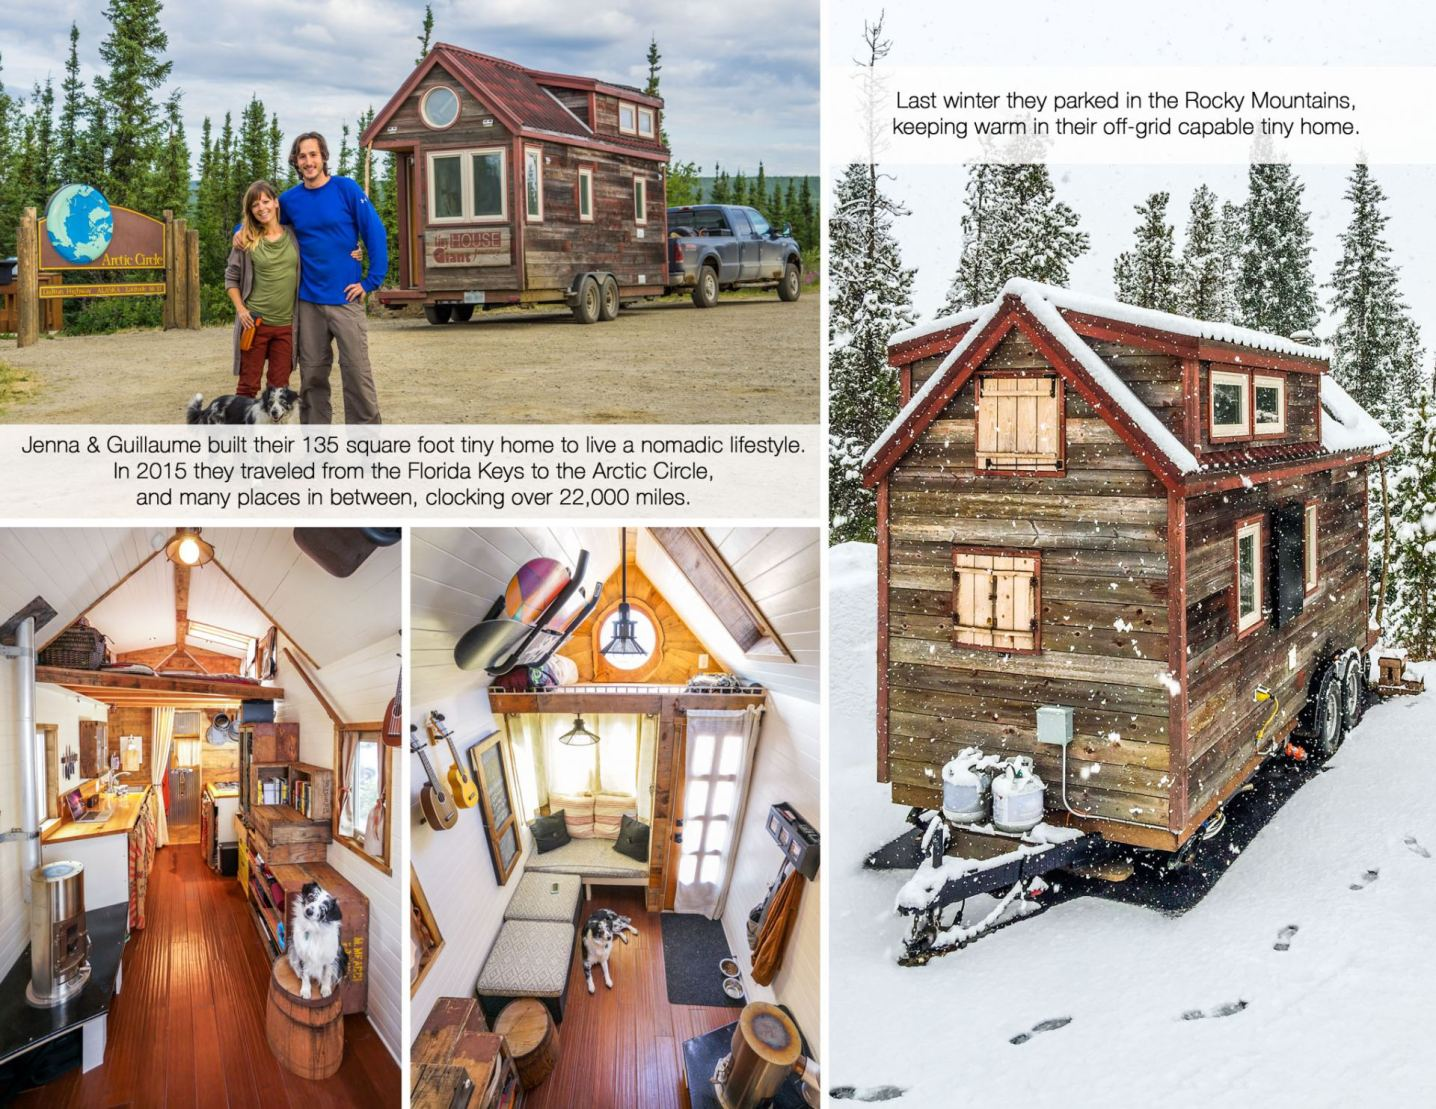 Jenna & Guilaume's Tiny House Giant Journey